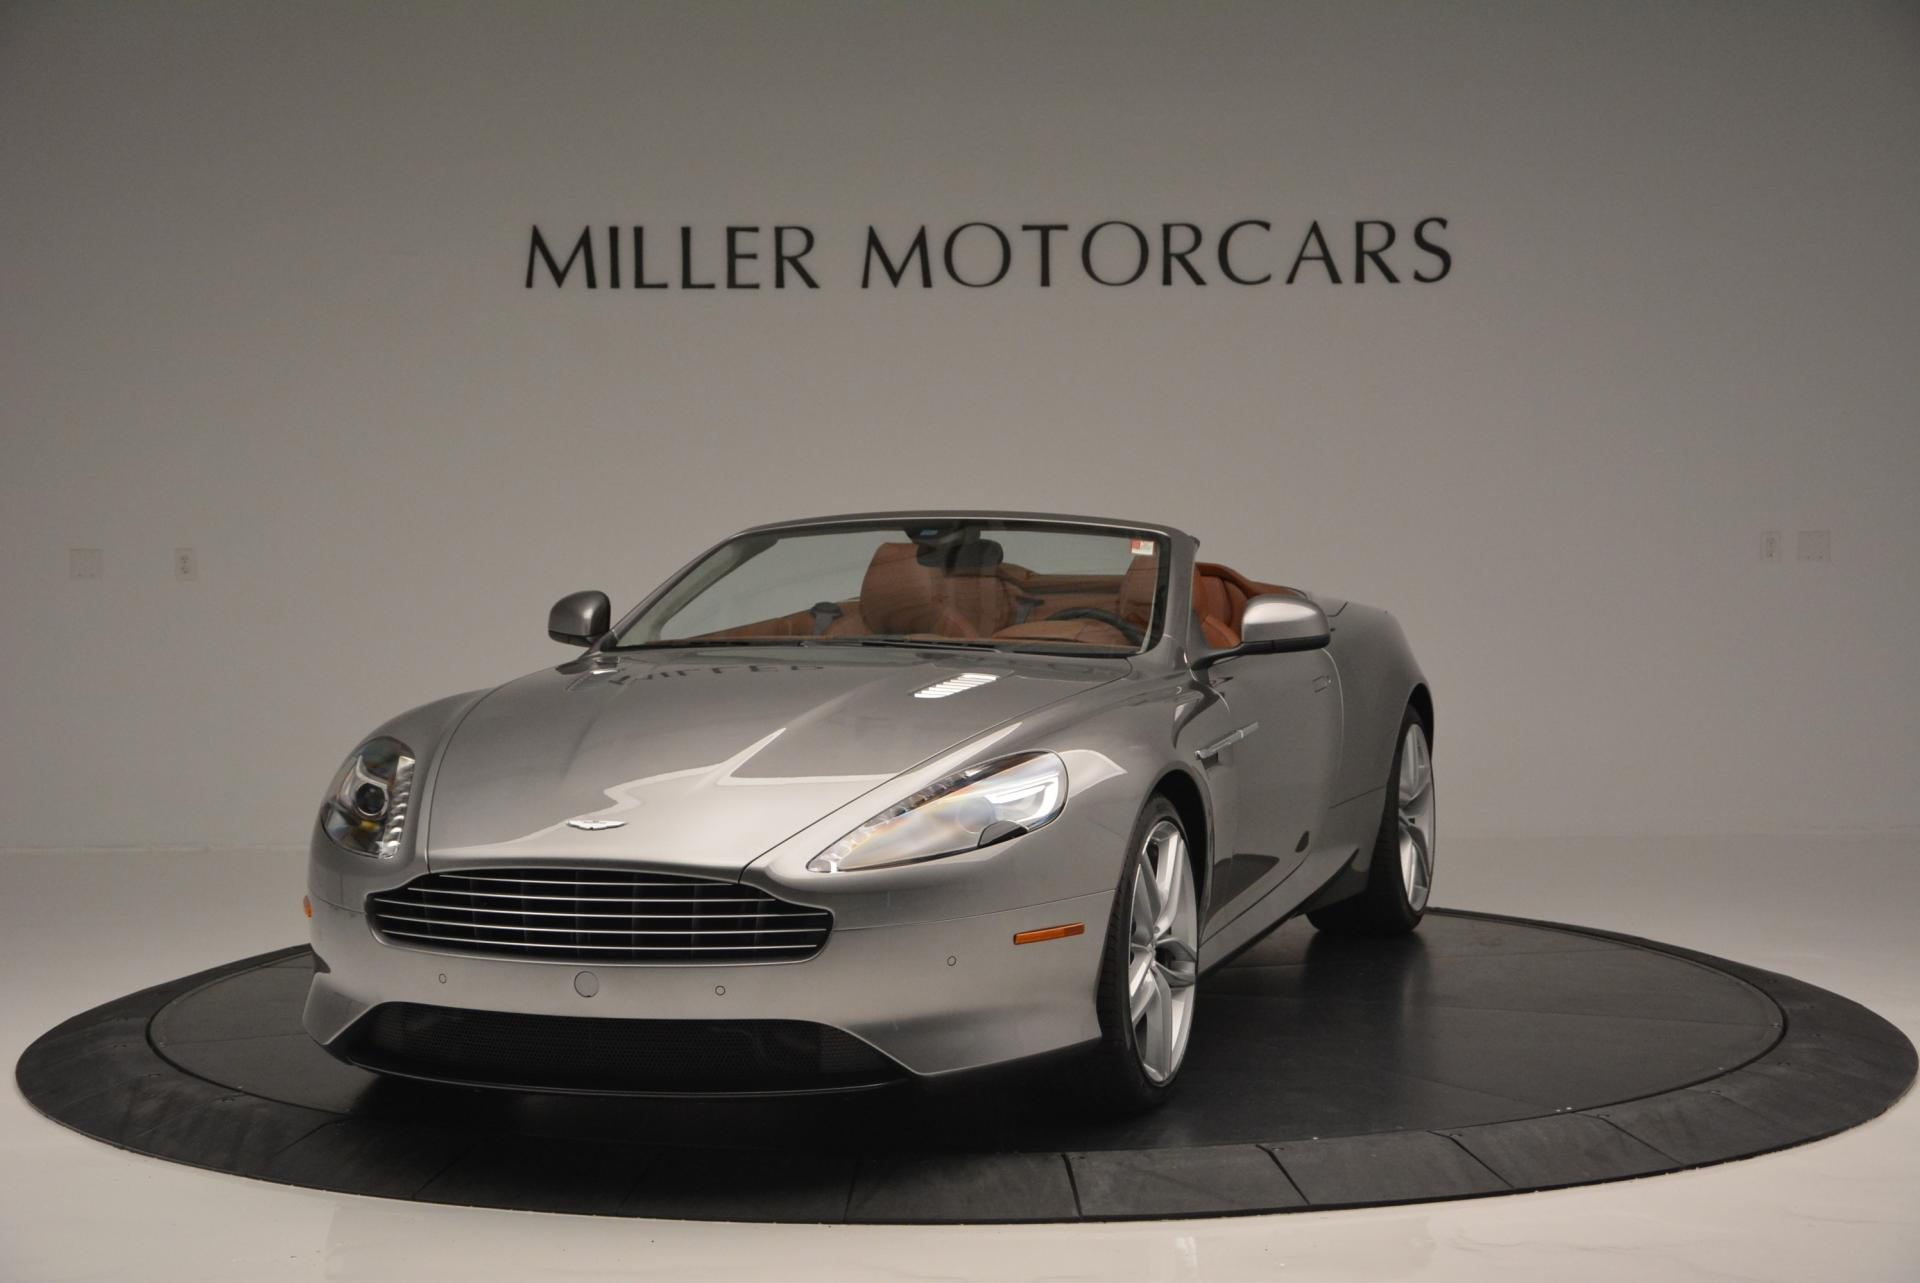 New 2016 Aston Martin DB9 GT Volante for sale Sold at Pagani of Greenwich in Greenwich CT 06830 1